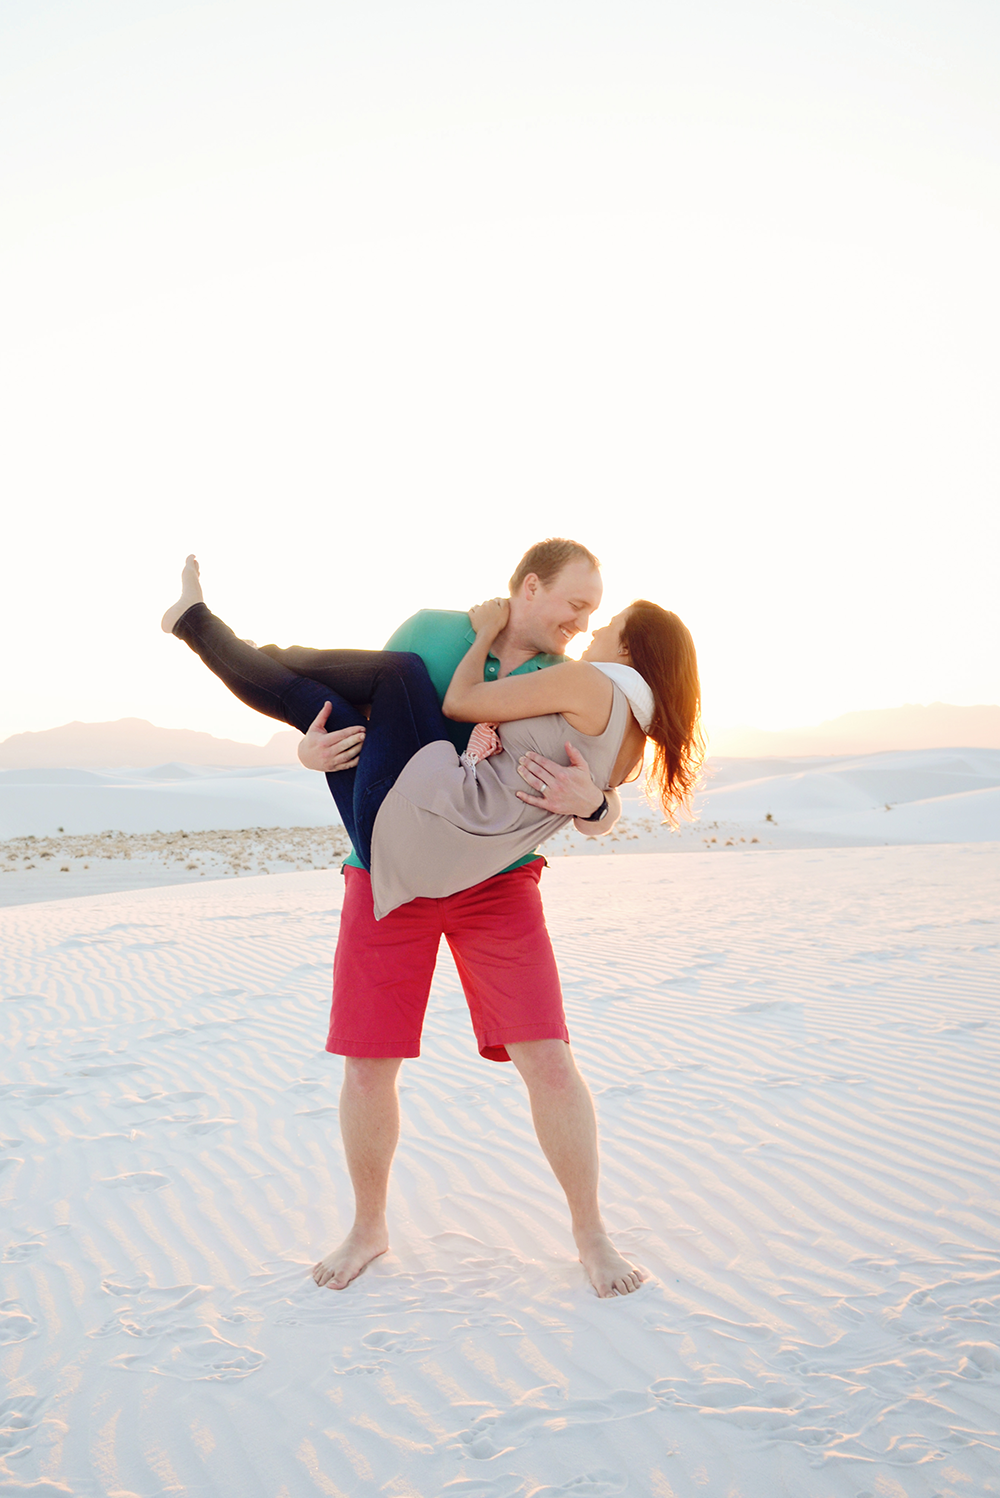 sunset-beach-couples-poses-kin